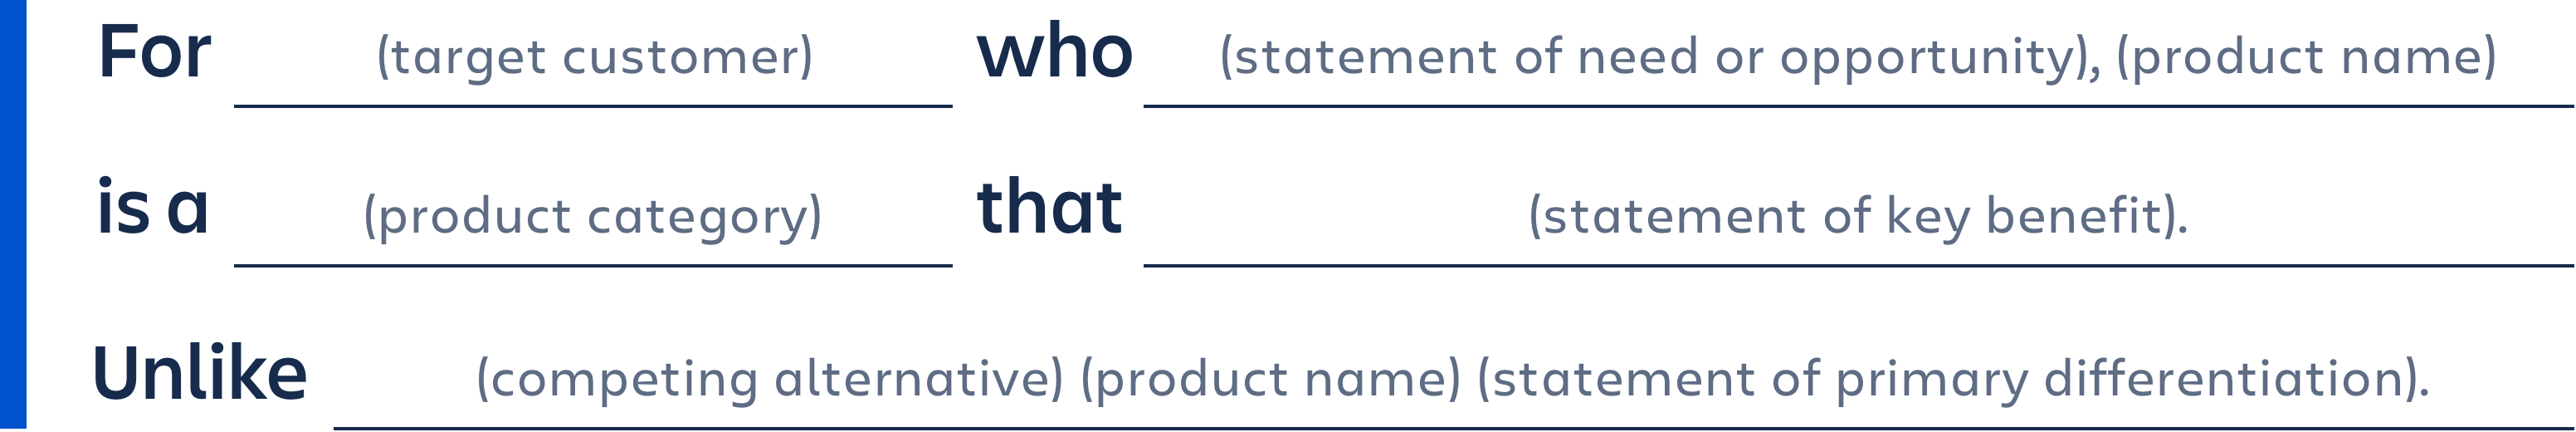 For (target customer) who (statement of nee or opportunity), (product name) is a (product category) that (statement of key benefit).